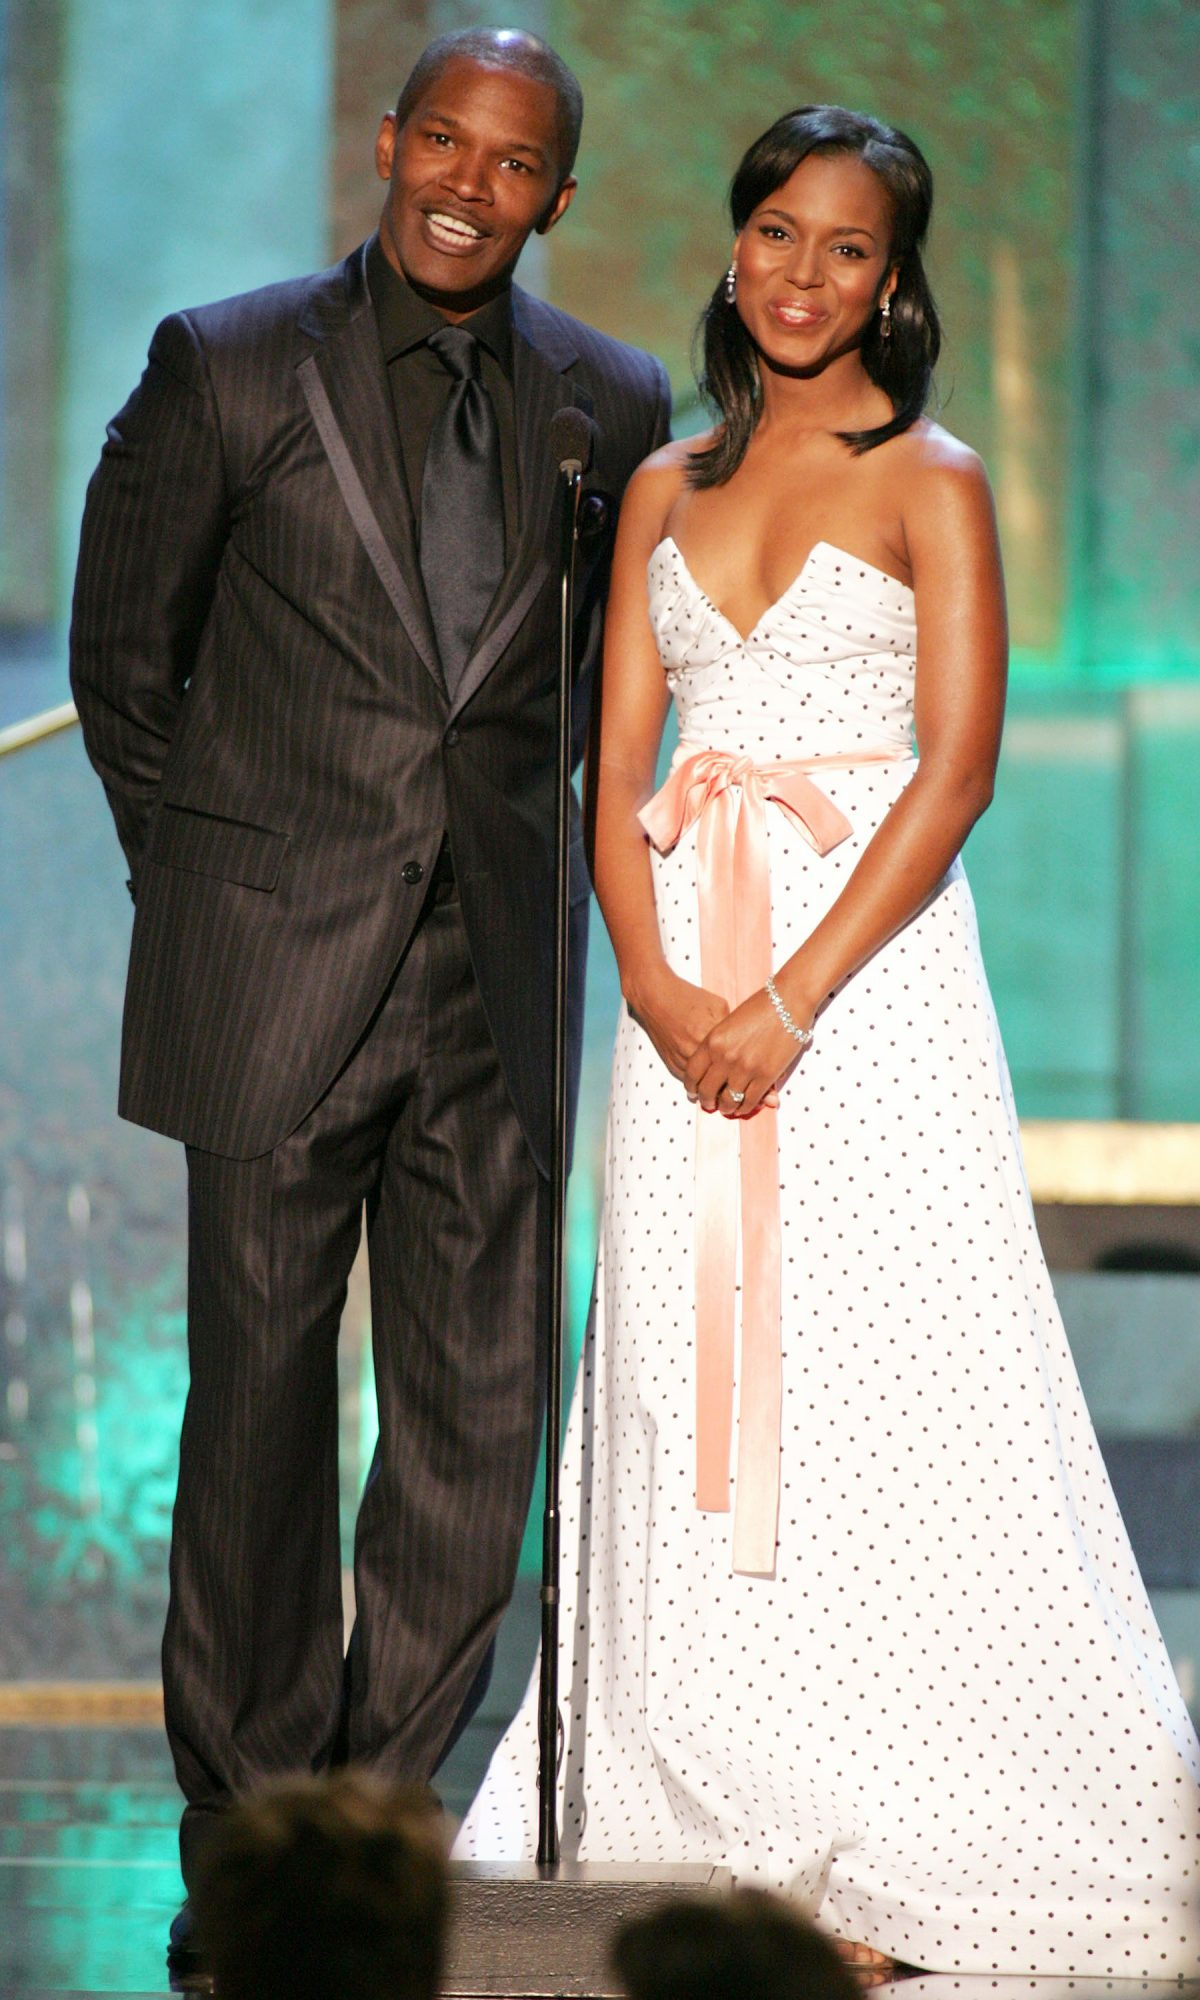 TNT Broadcasts 11th Annual Screen Actors Guild Awards - Show